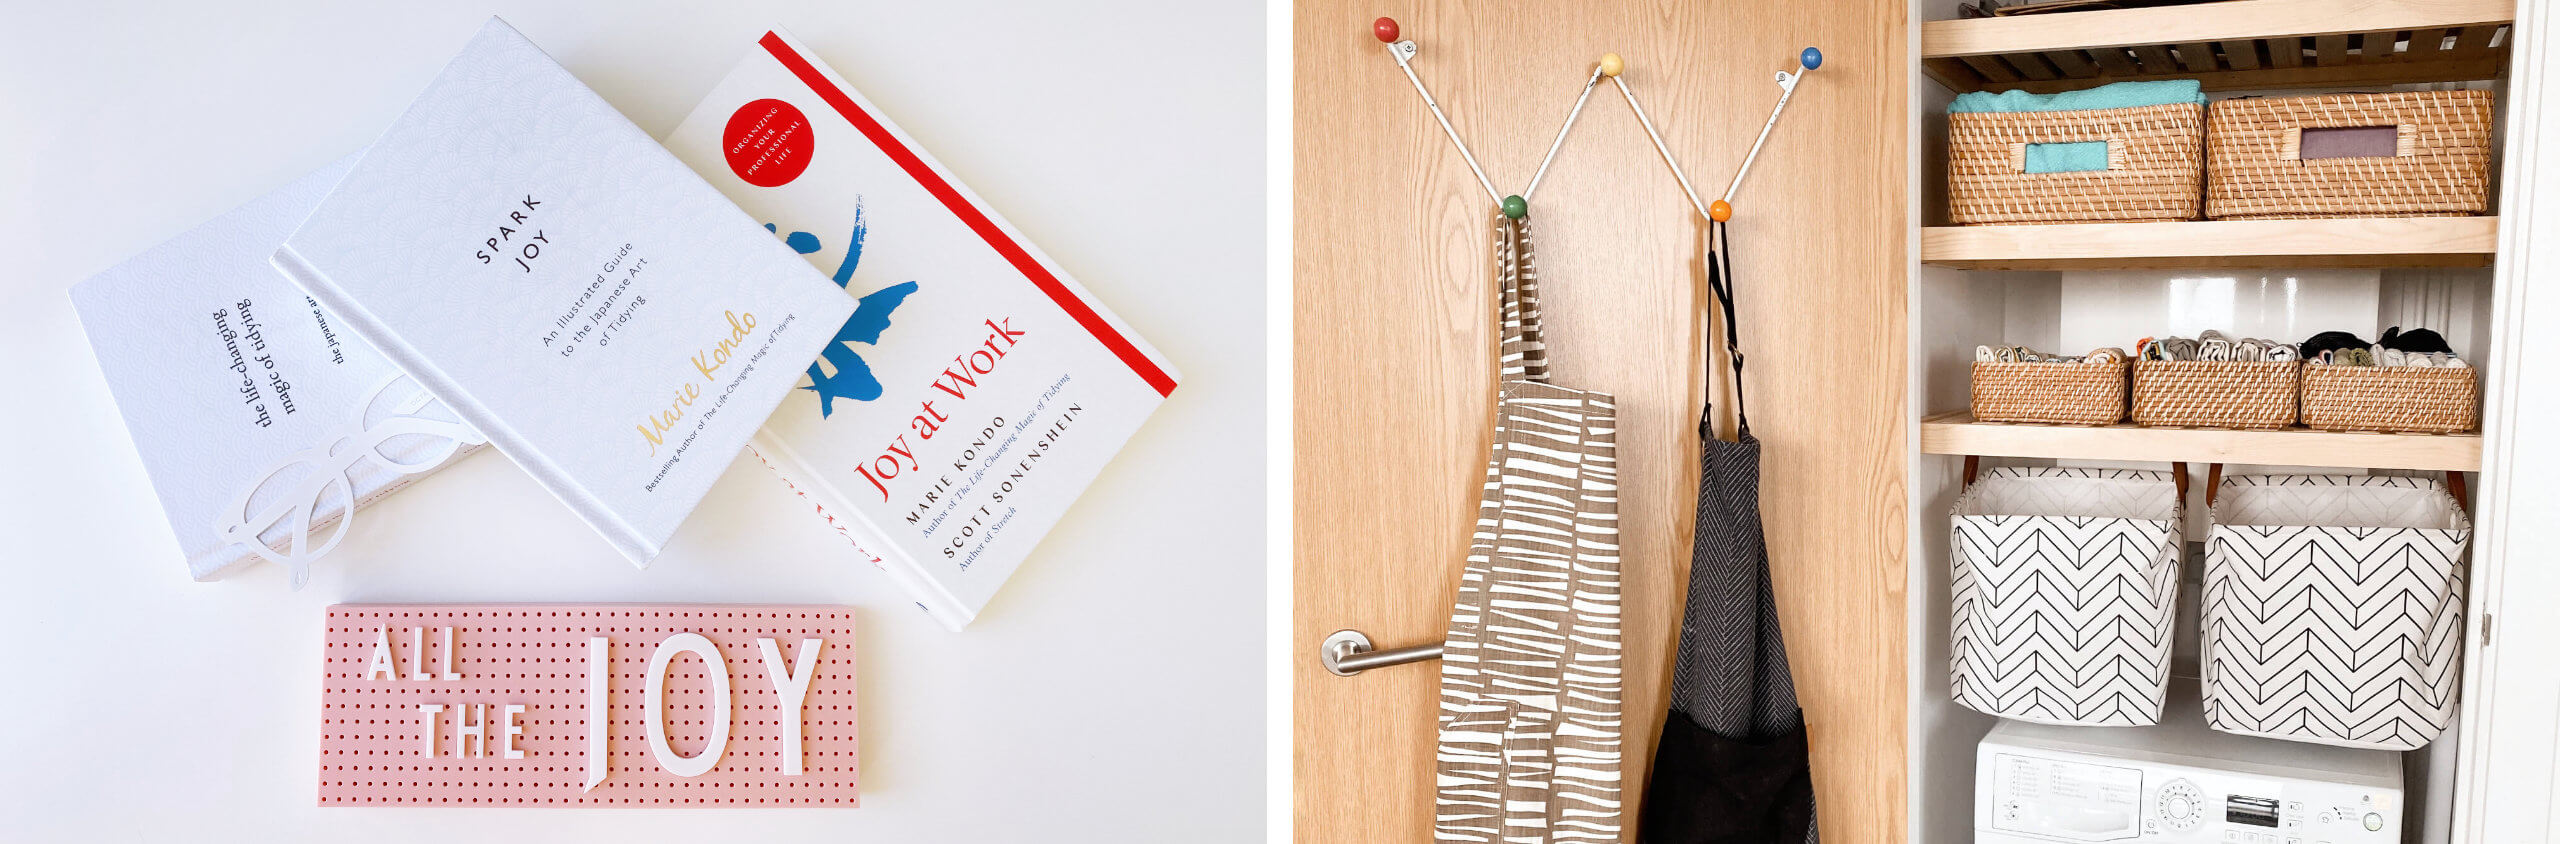 Marie Kondo's Bestselling Books About How To Change Your Life Through Tidying And A Closet Full Of KonMari Folded Tea Towels